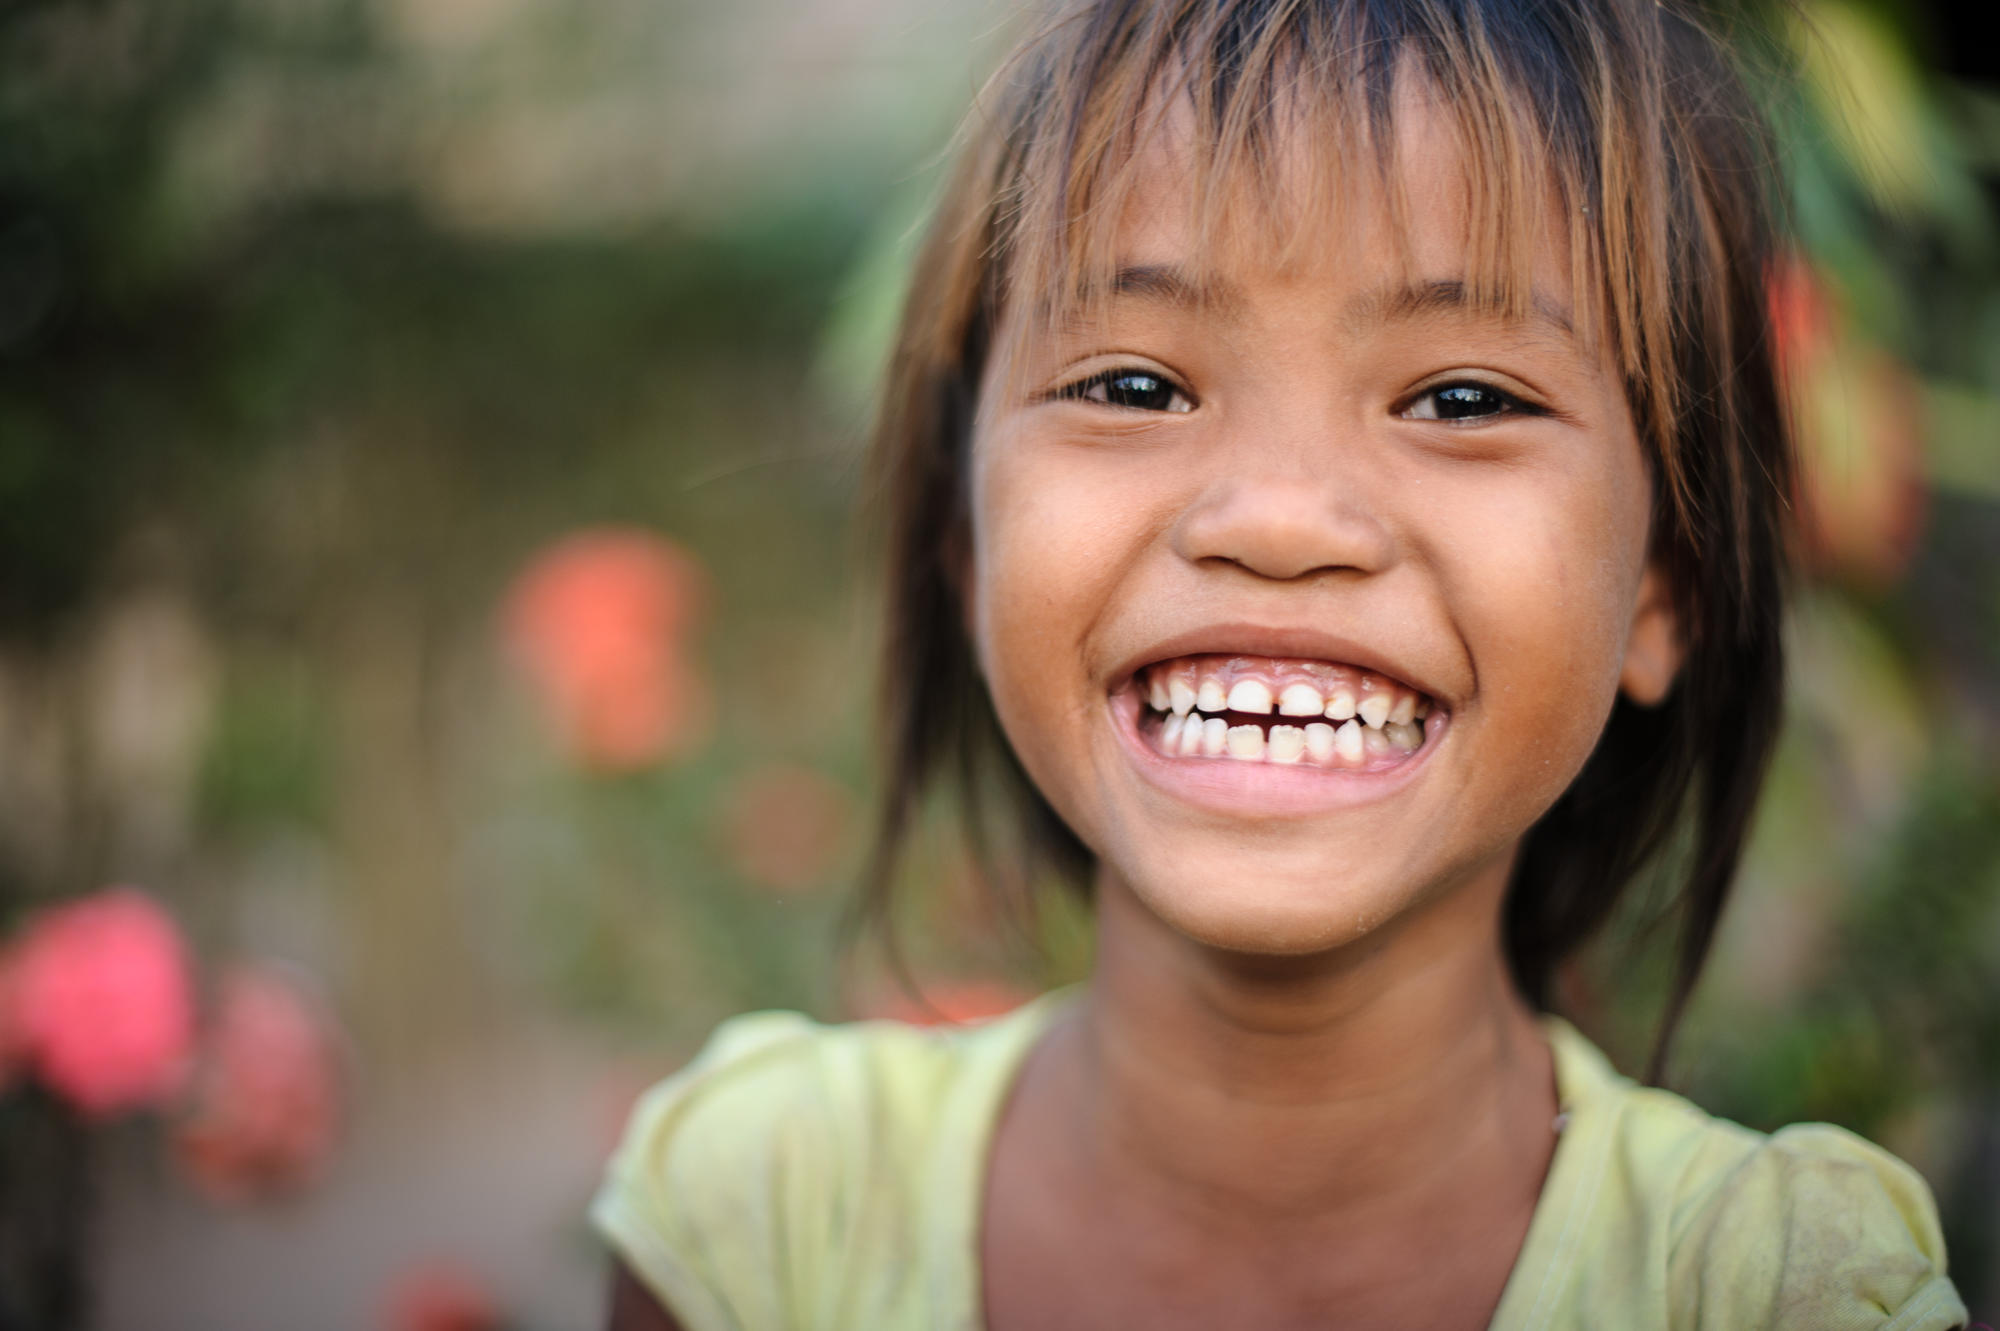 A Khmer girl smiles